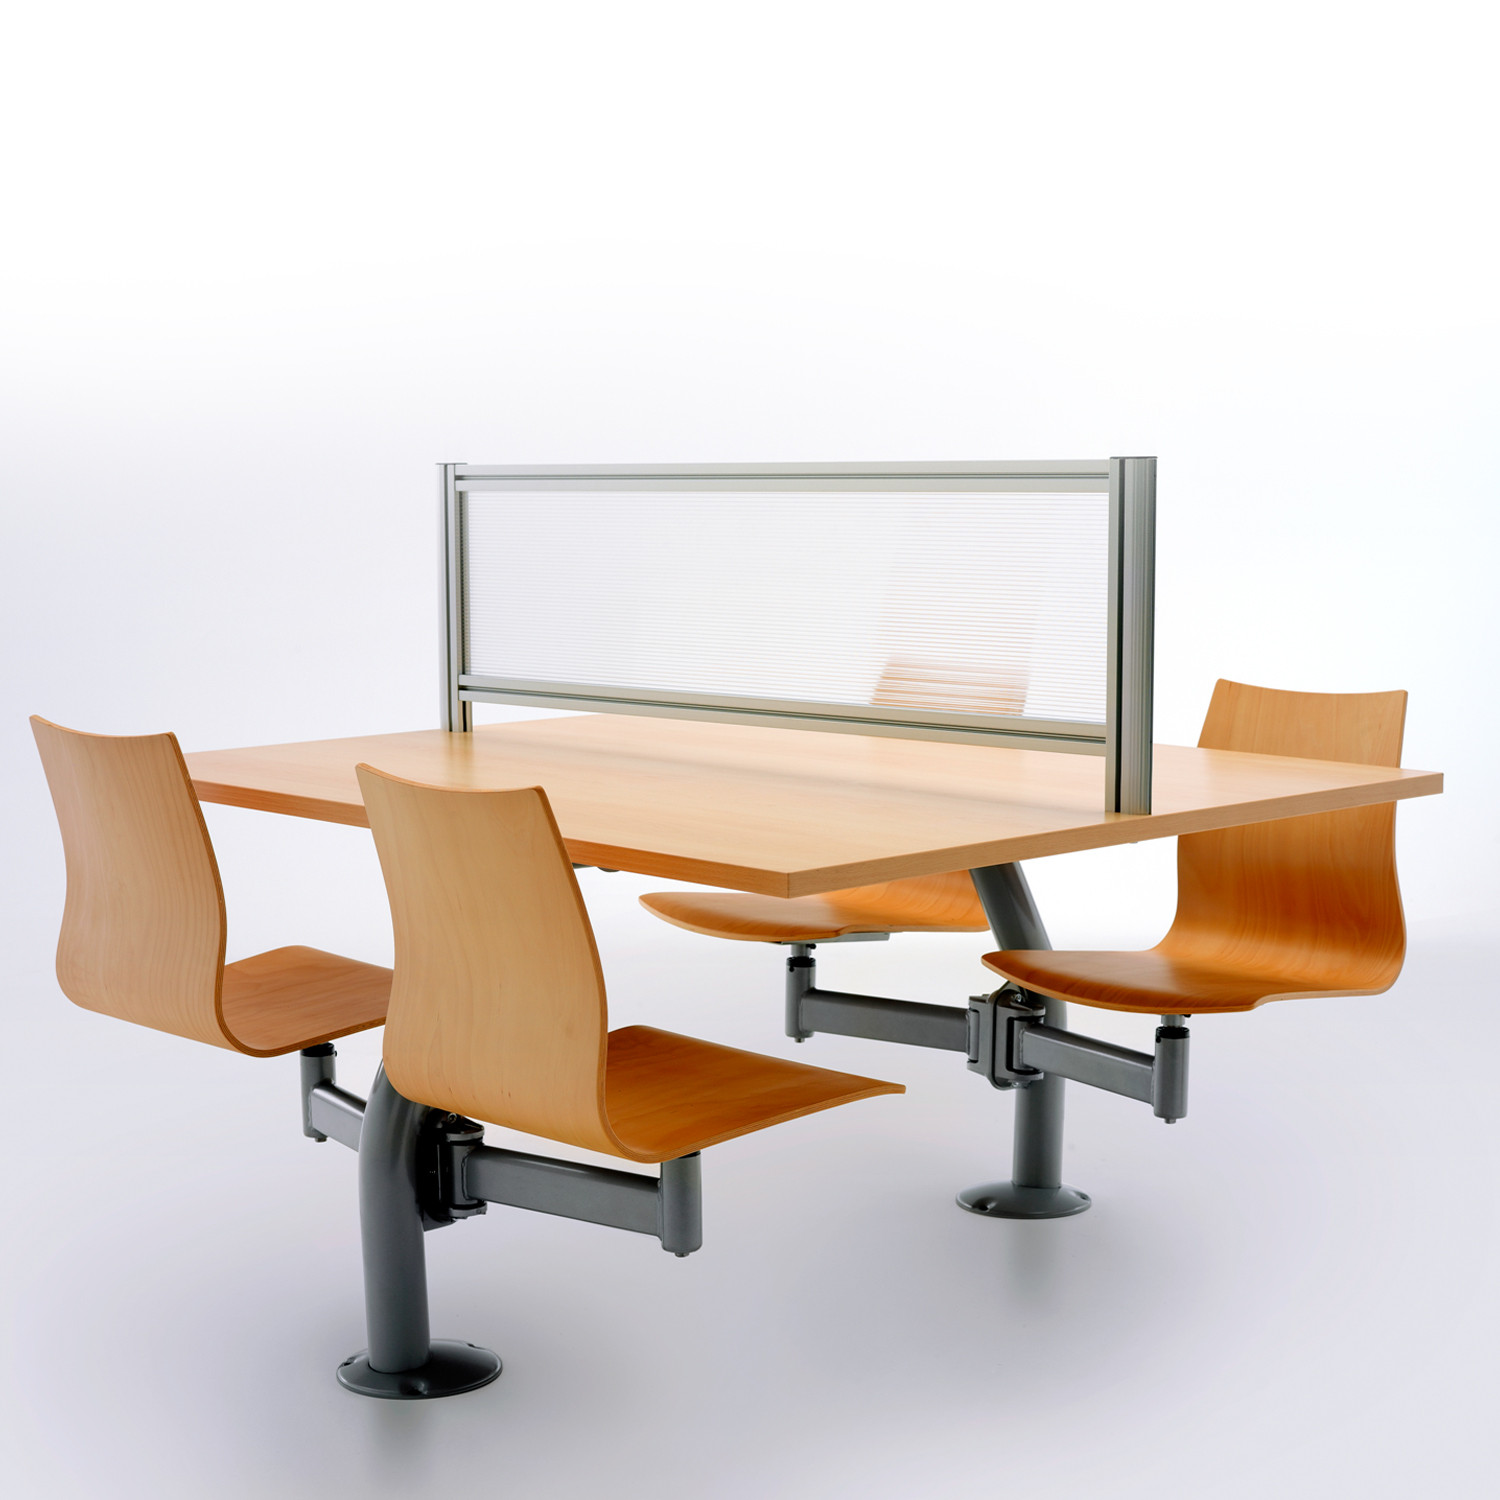 Thesi Lecture Seating System with Screen Divider